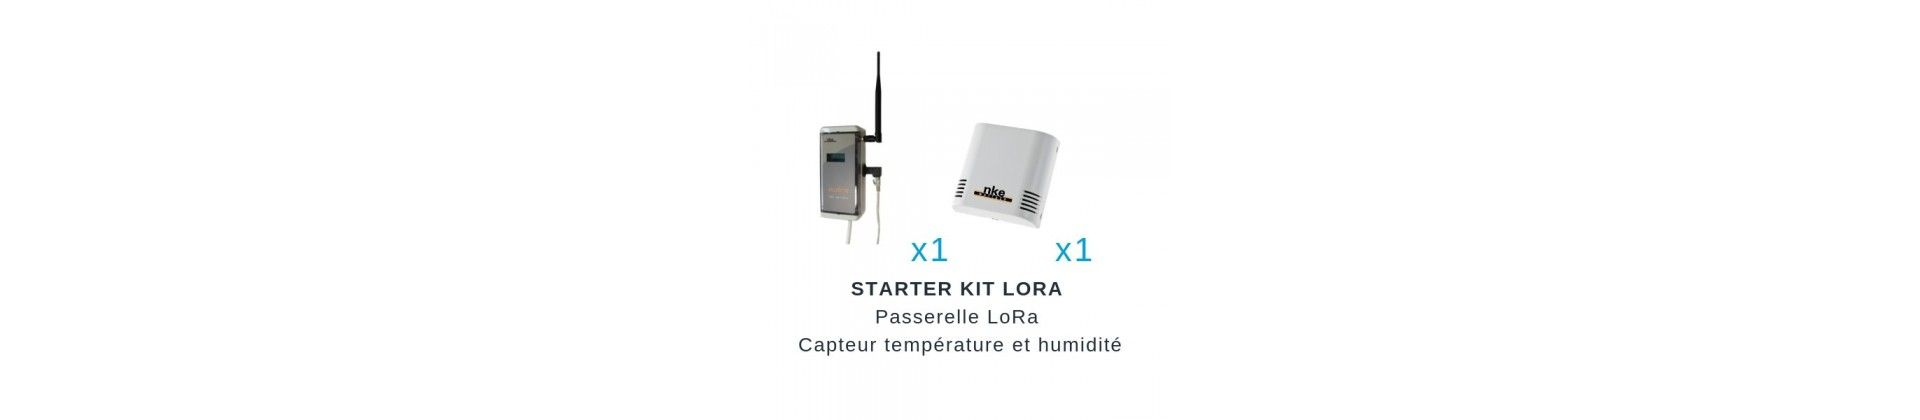 Kit IoT complet